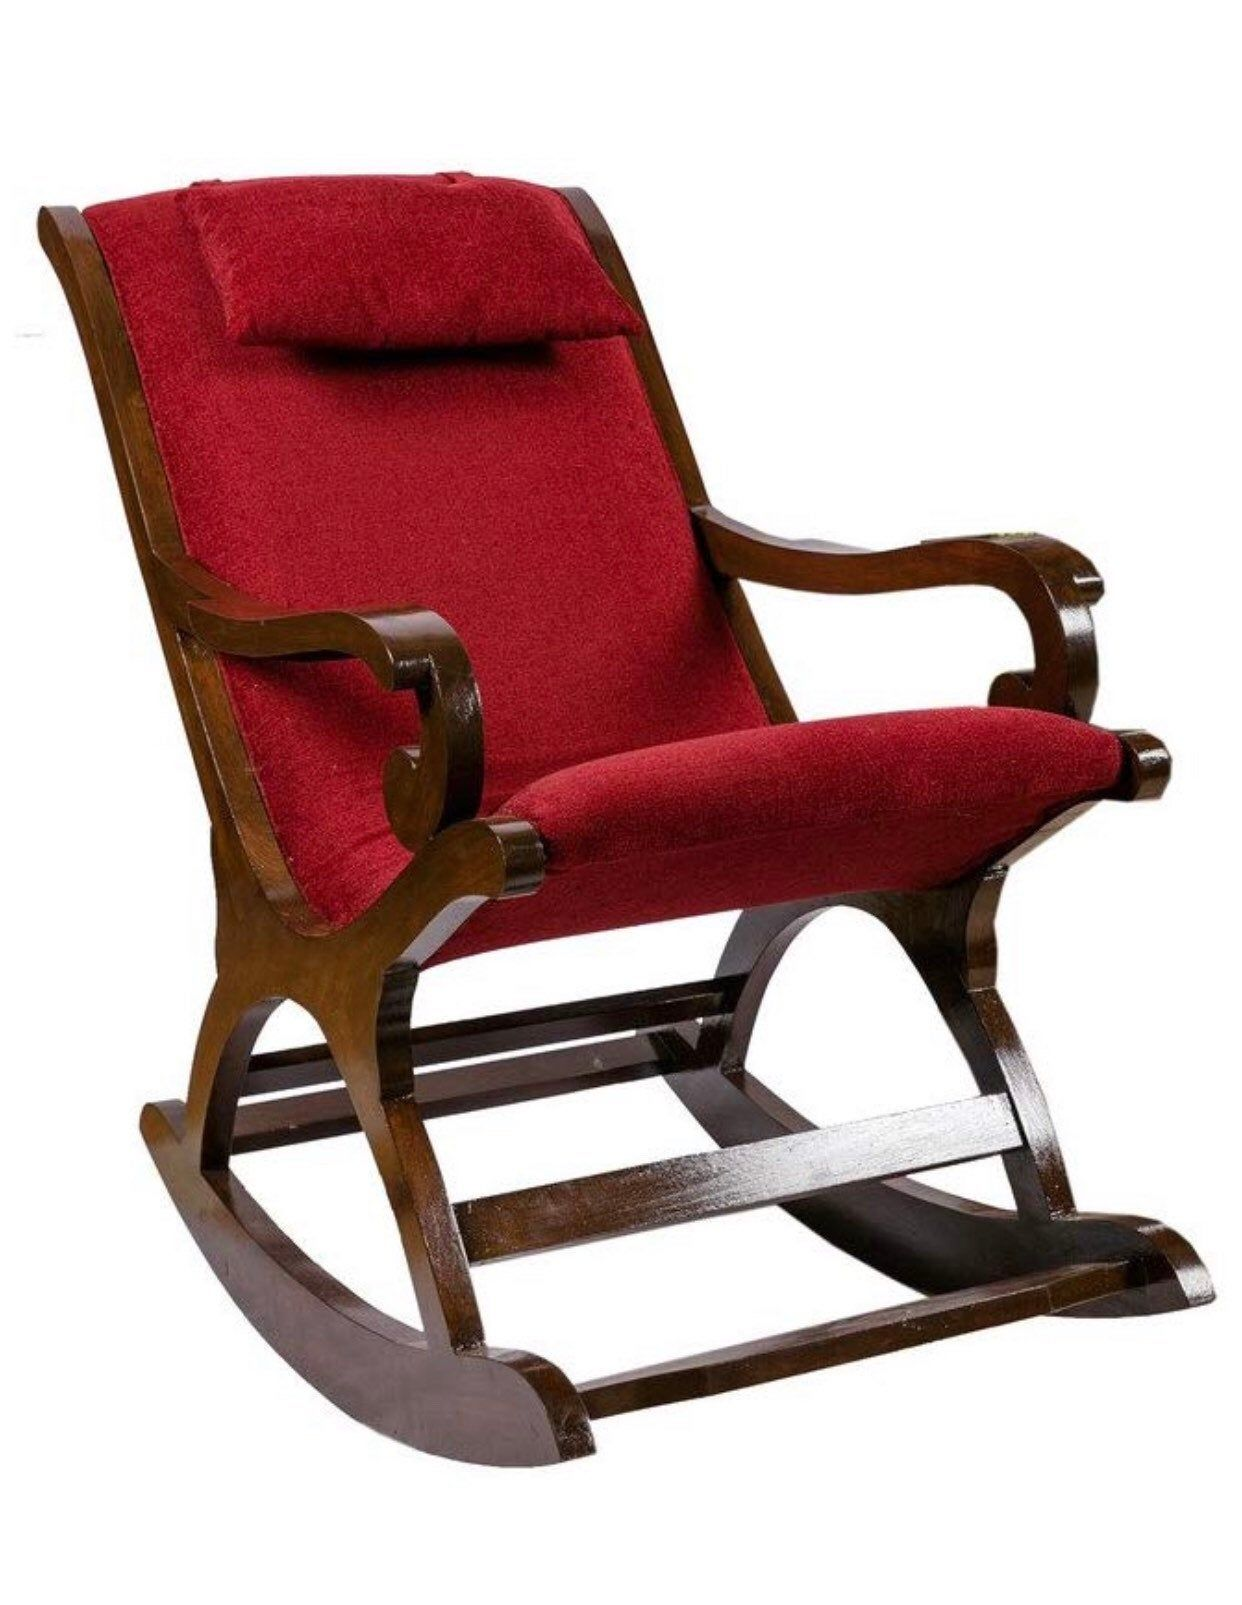 Teak Wood Rocking Chair, Multiple Cushion Colours, Wood